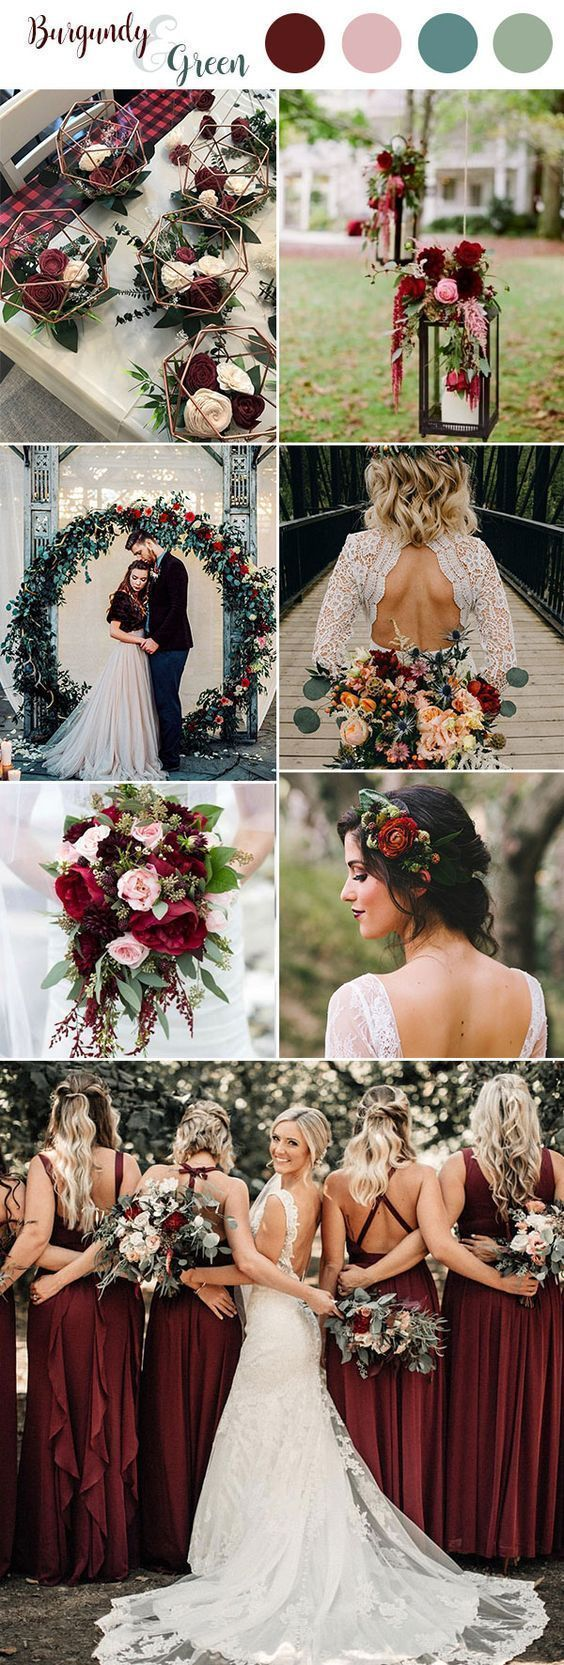 Over 100 Marsala / Burgundy color combinations for weddings in the fall of 2019 …